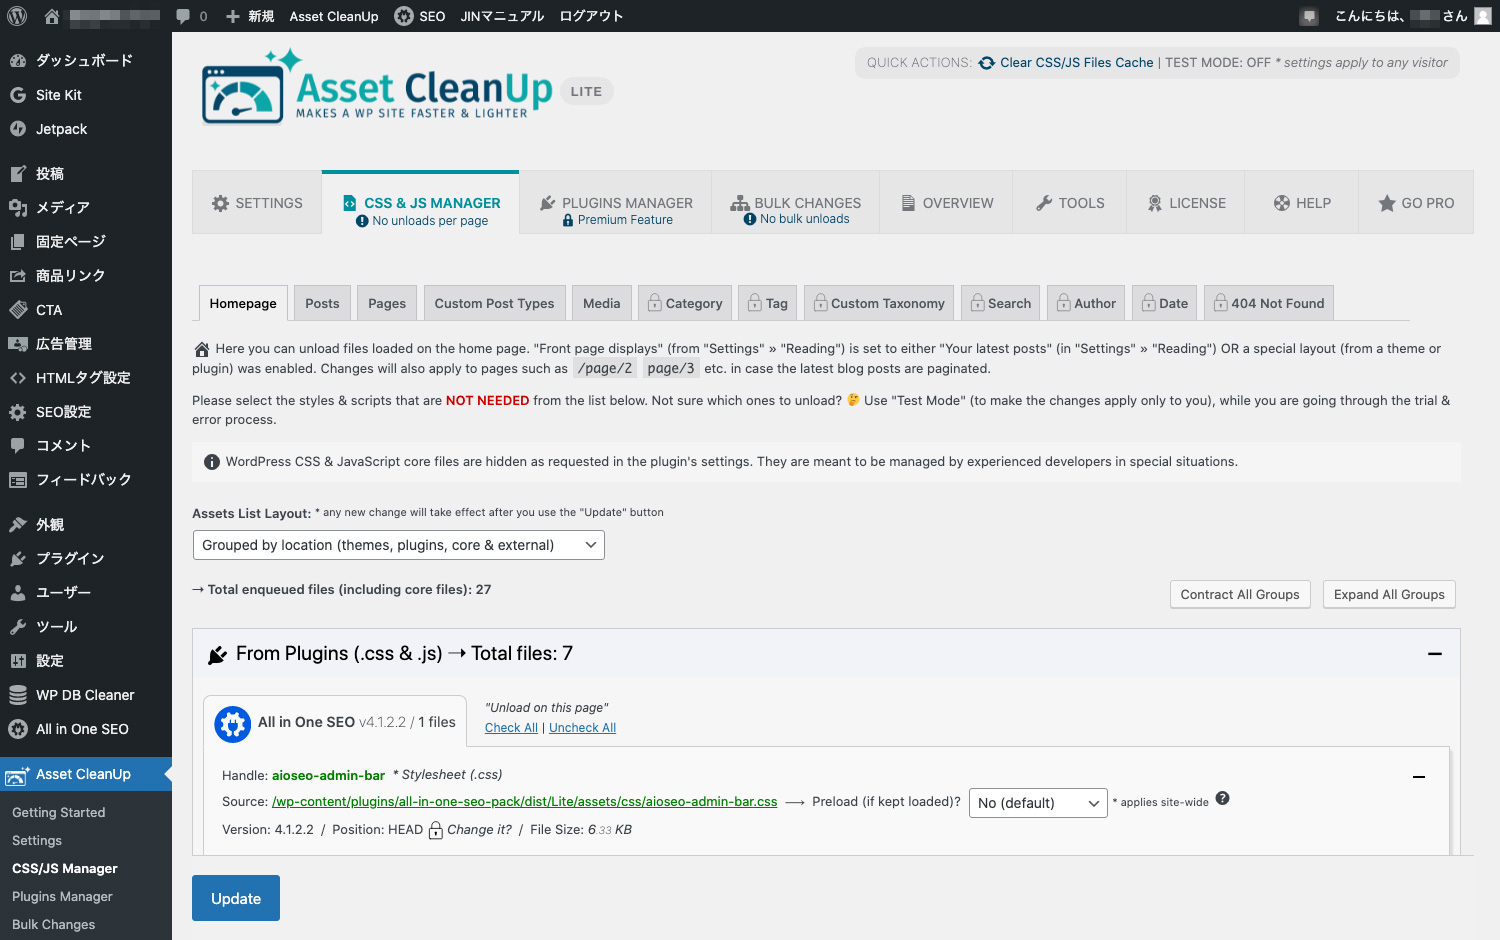 AssetCleanUp